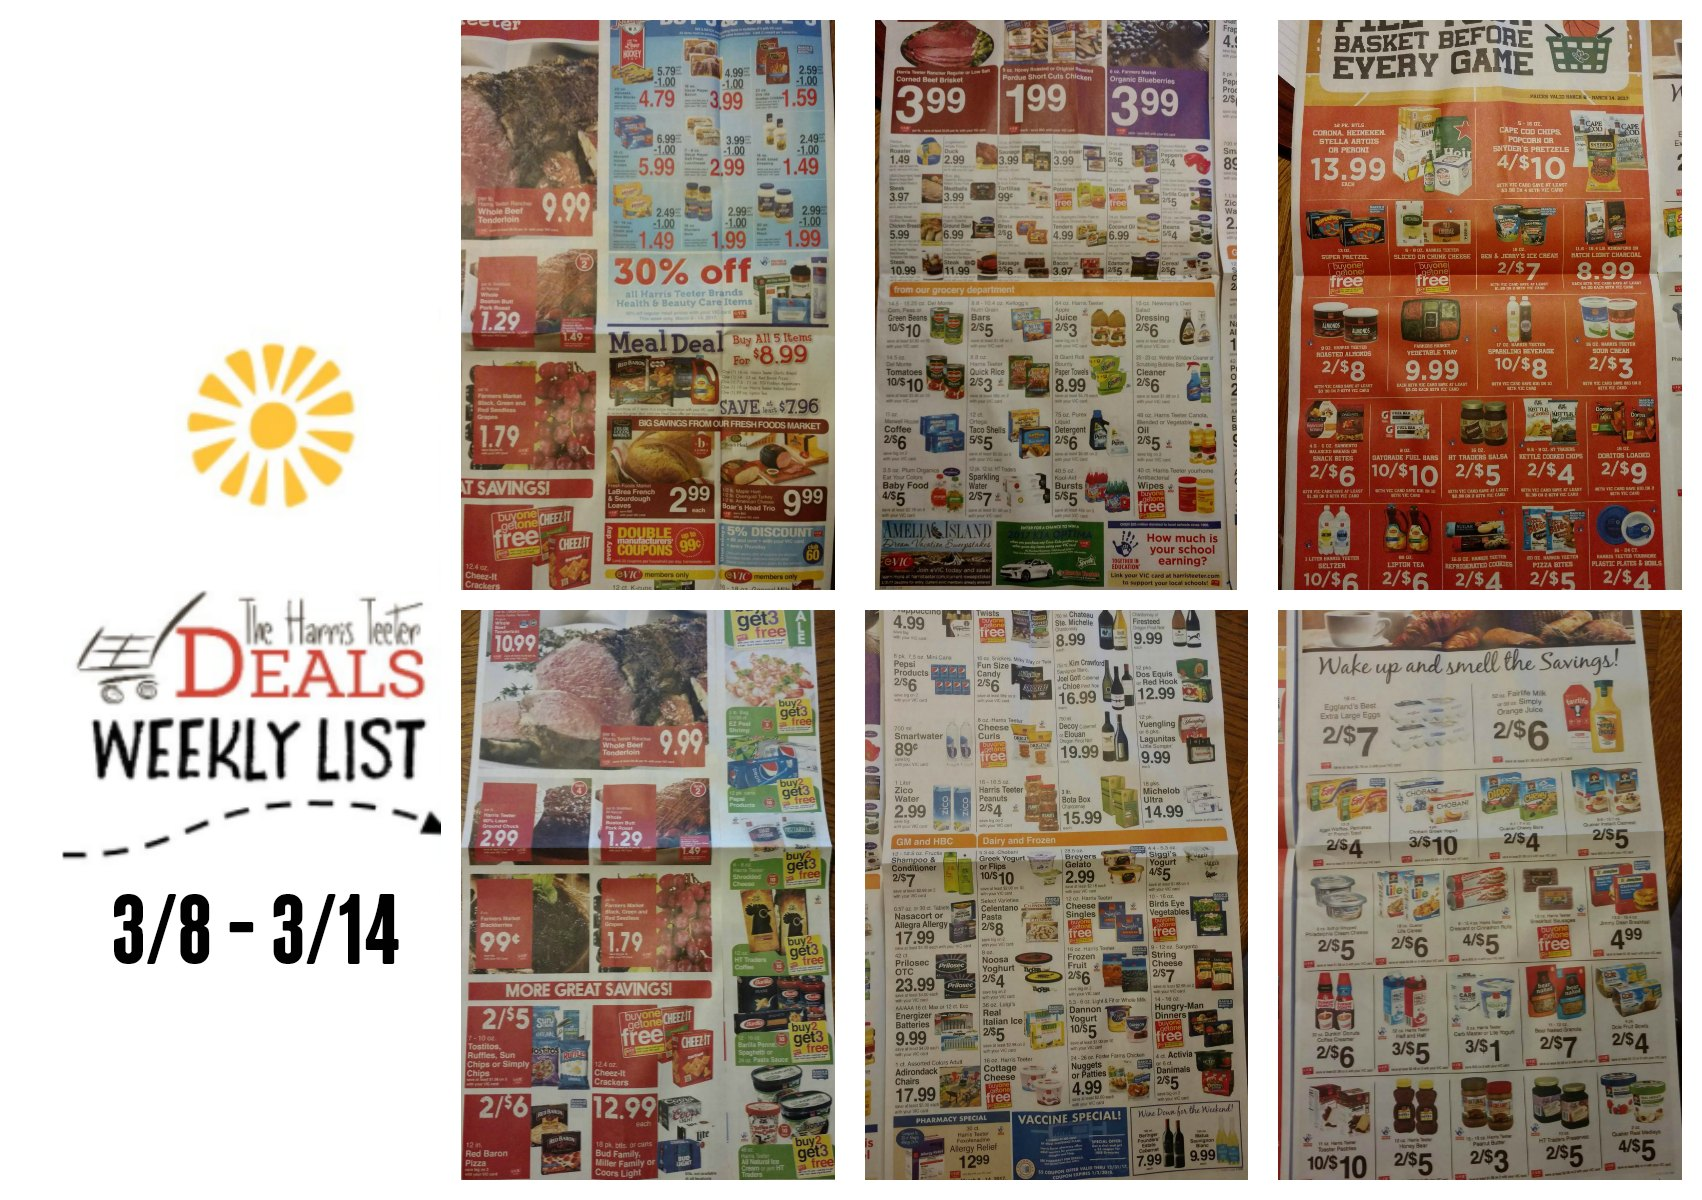 Harris Teeter Deals Weekly Ad Matchup List 3 8 14 Complete Minute Maid Homestyle Orange 1l